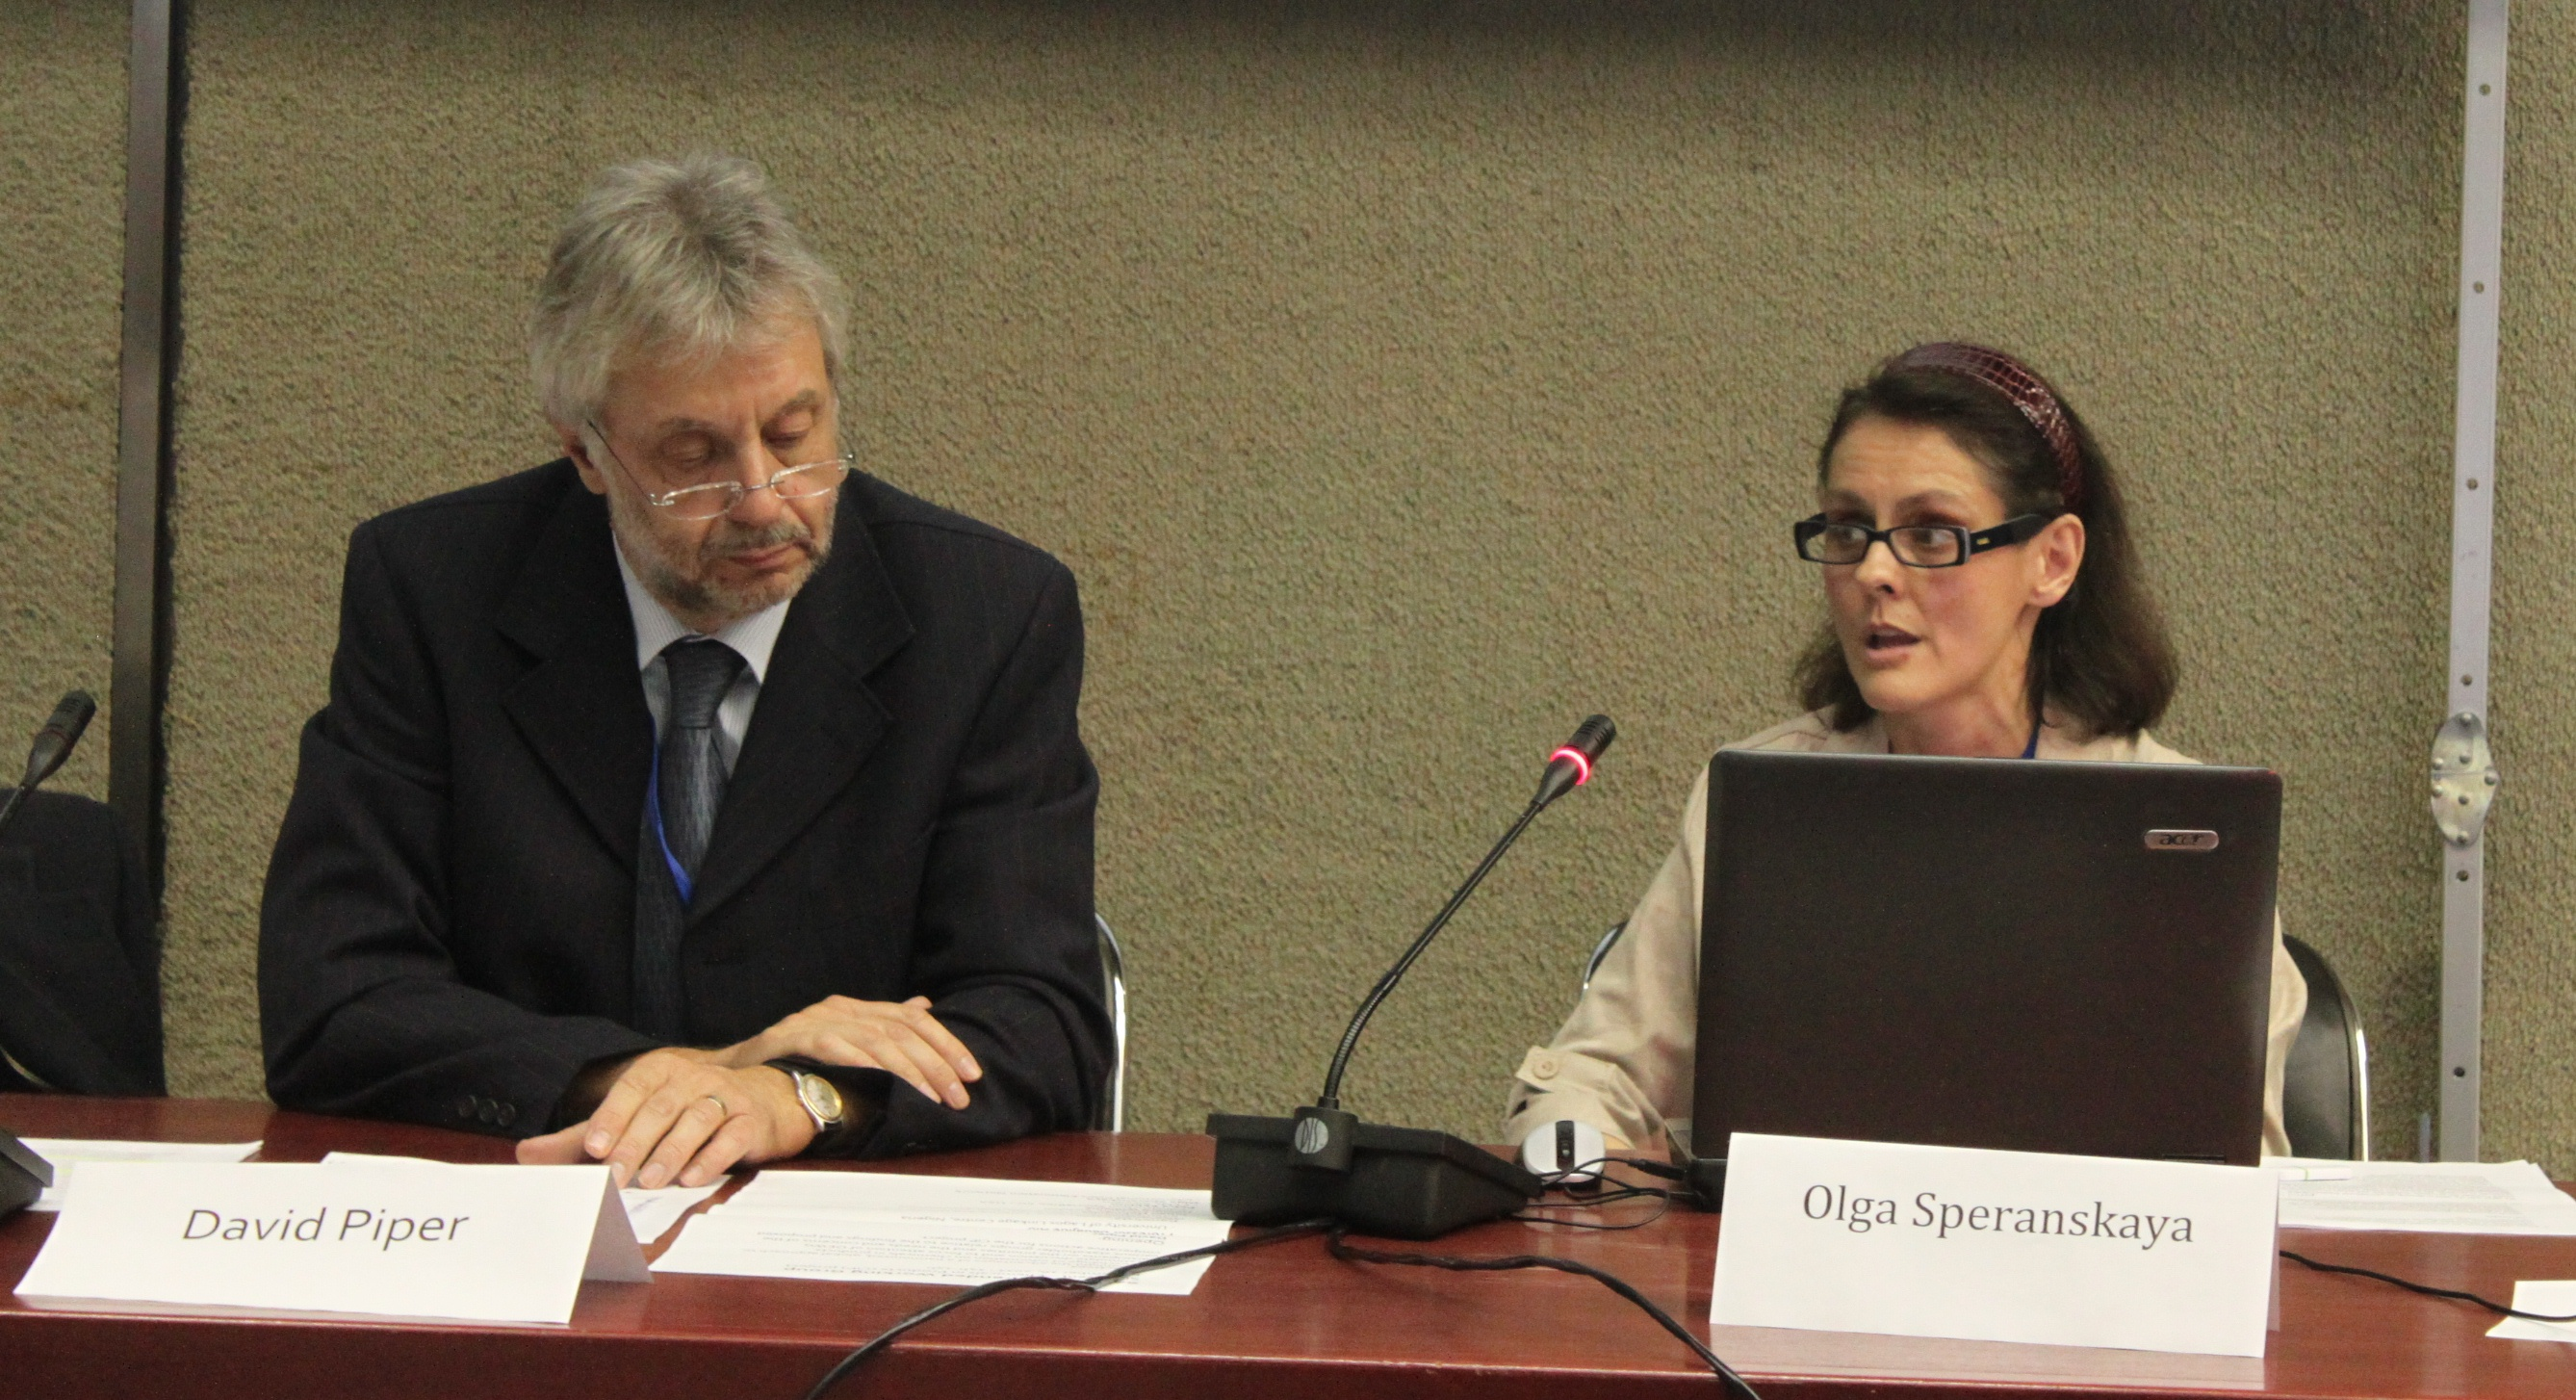 Olga Speranskaya speaking at CiP side event, 1st OEWG for SAICM, Belgrade, Nov. 2011